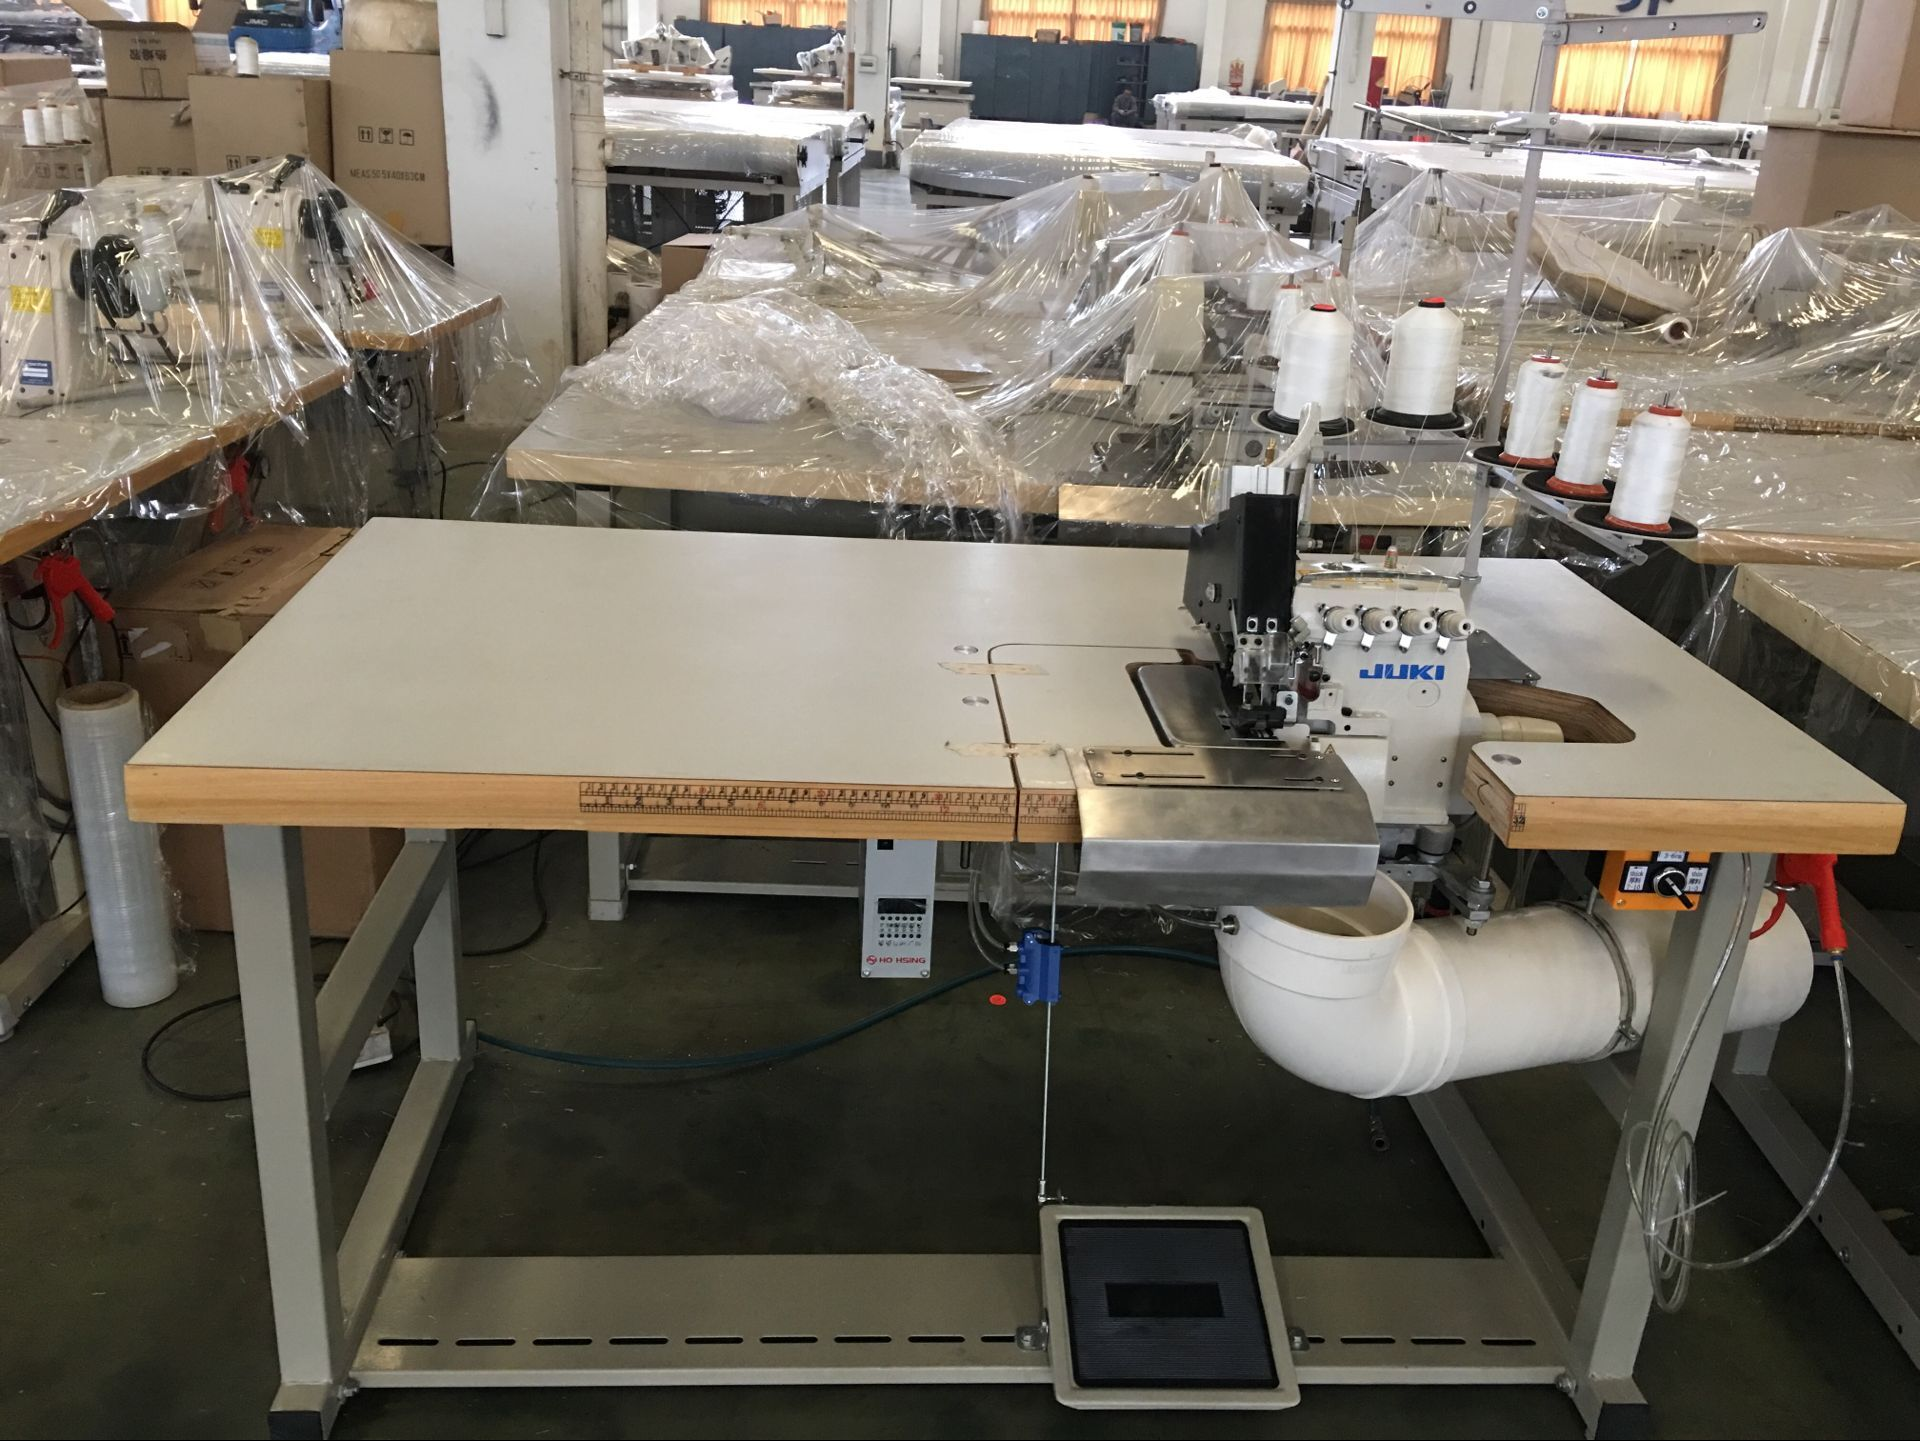 ds5 Mattress Flanging Machine flanging ds7a YUANTIAN Mattress Machines